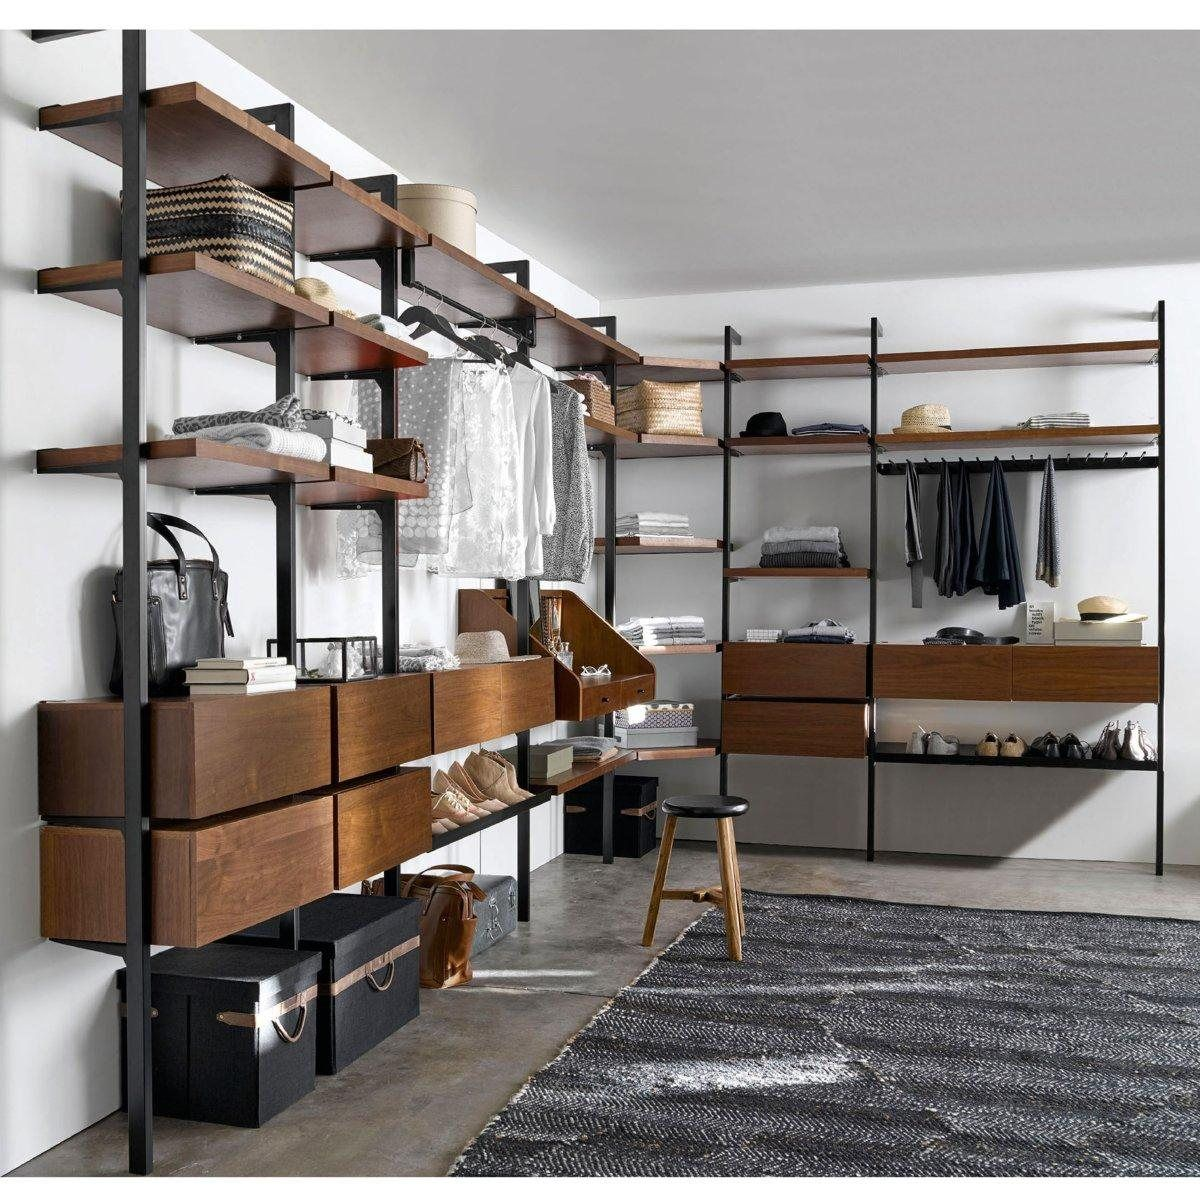 systeme etagere modulaire am pm meuble pinterest tag res modulaires modulaire et systeme. Black Bedroom Furniture Sets. Home Design Ideas